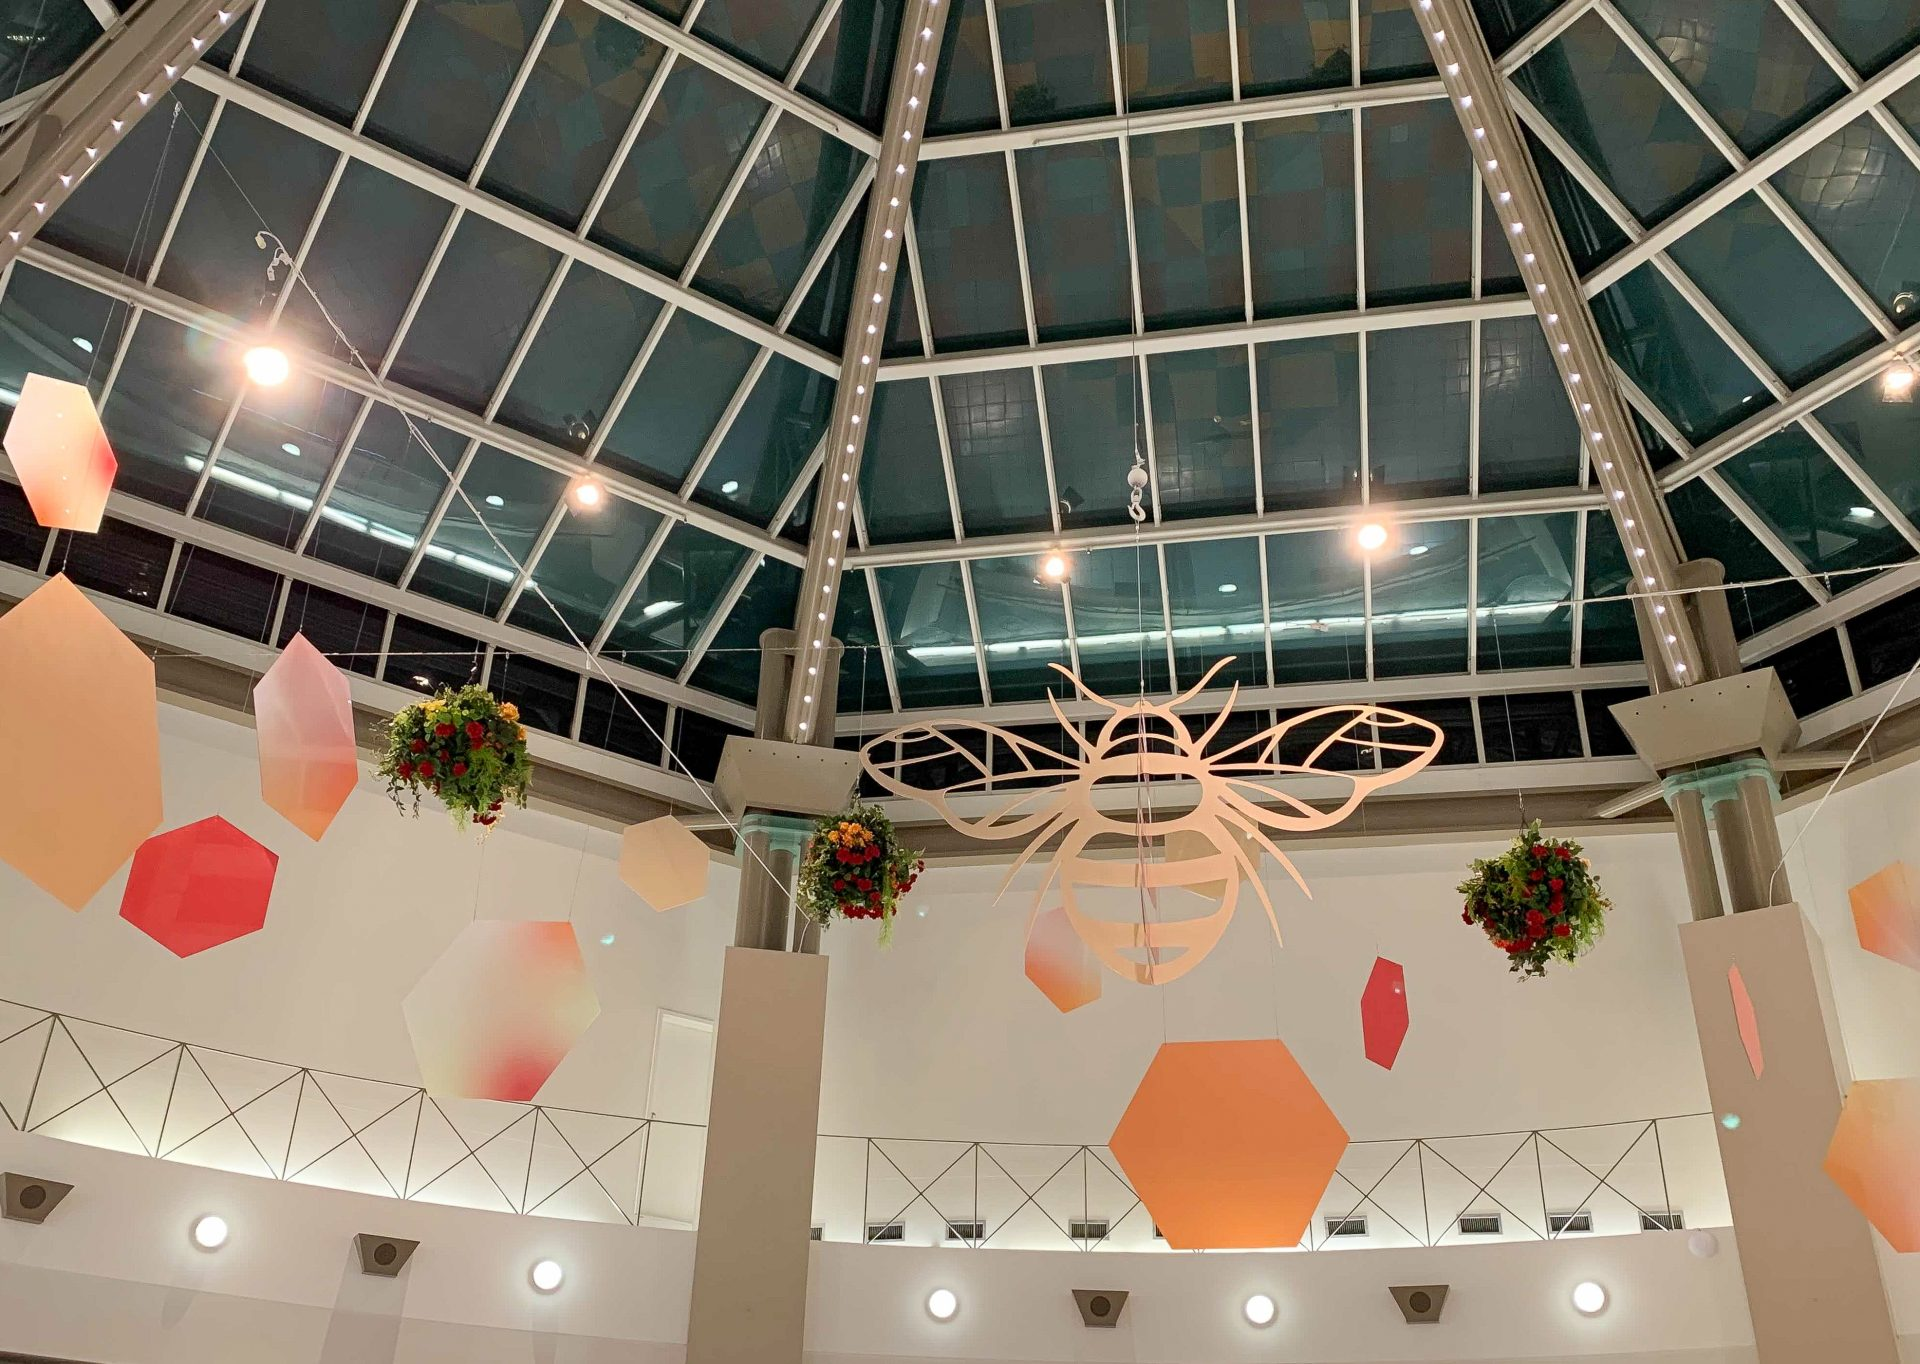 custom hanging bee display at sevenoaks mall, with hanging baskets, hexgon shapes and large bee cutout